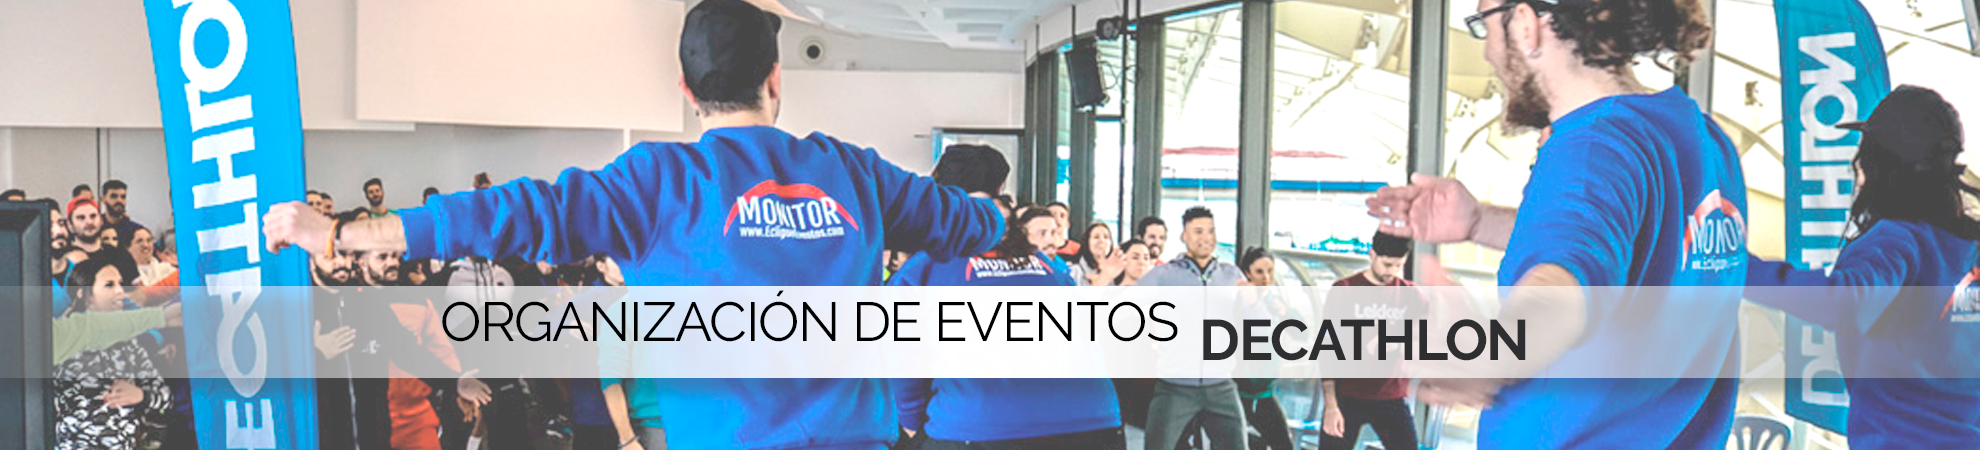 Evento decathlon